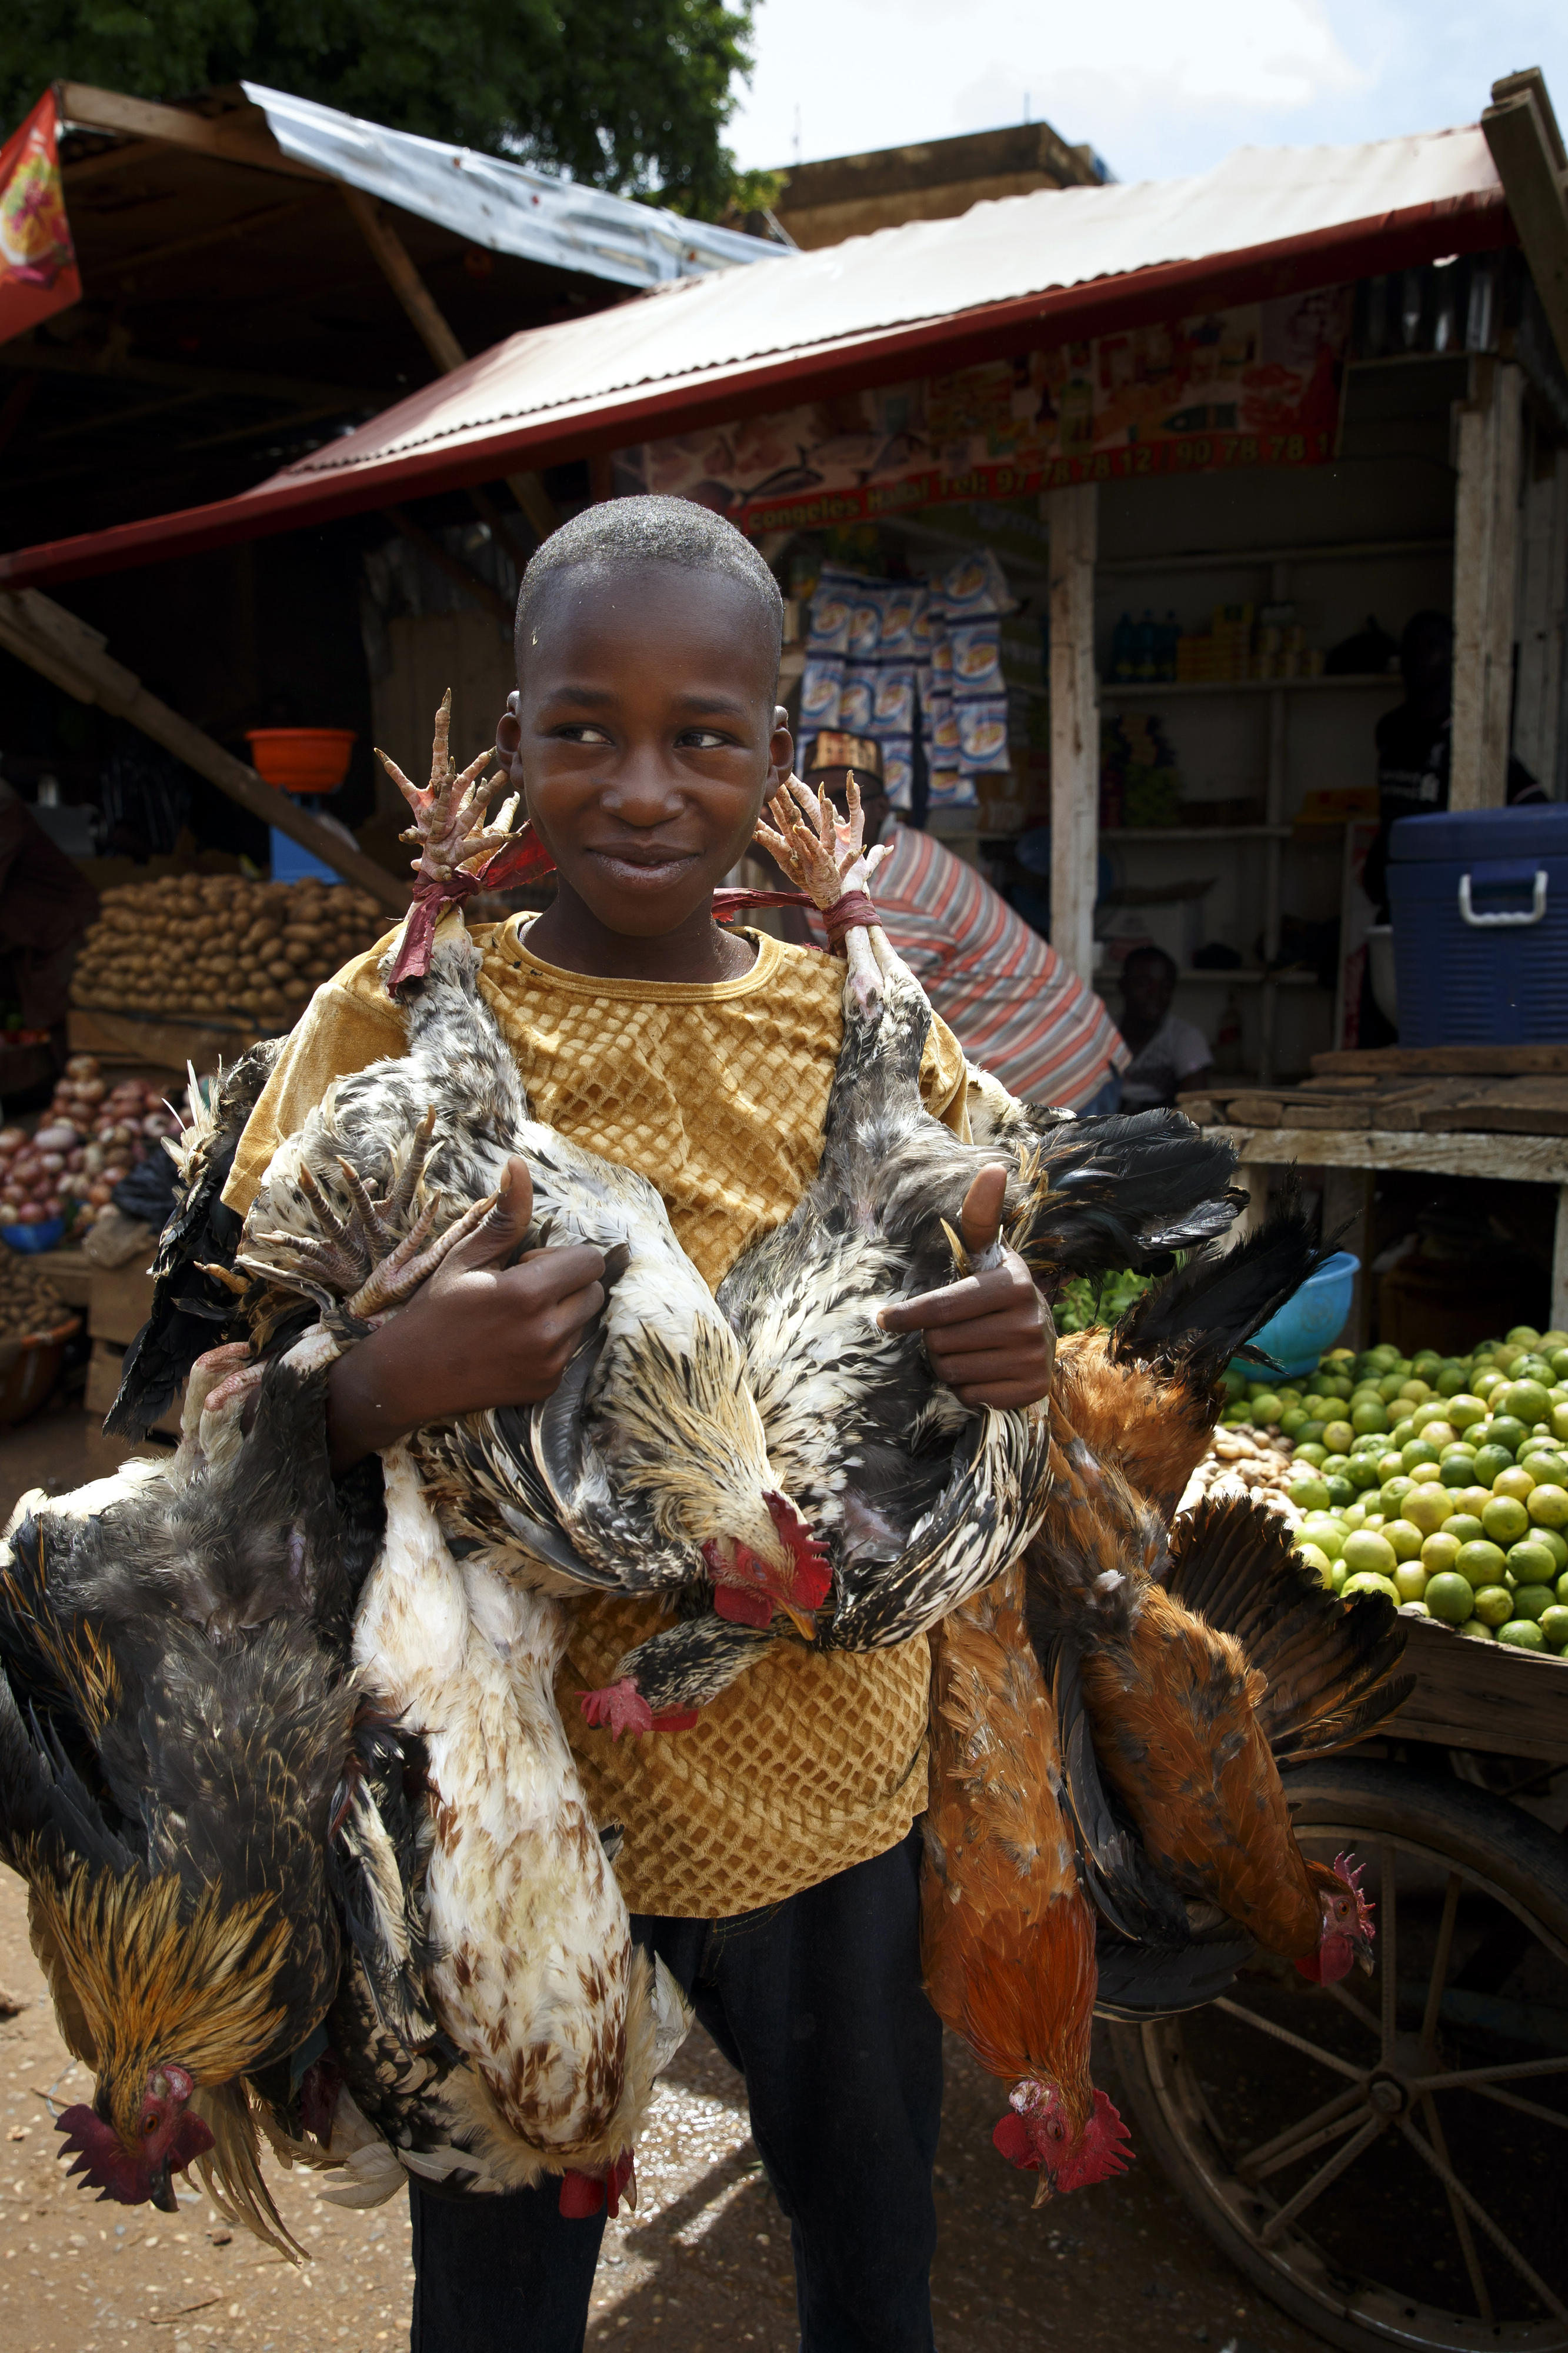 A boy carries live chickens through the market in Niamey.